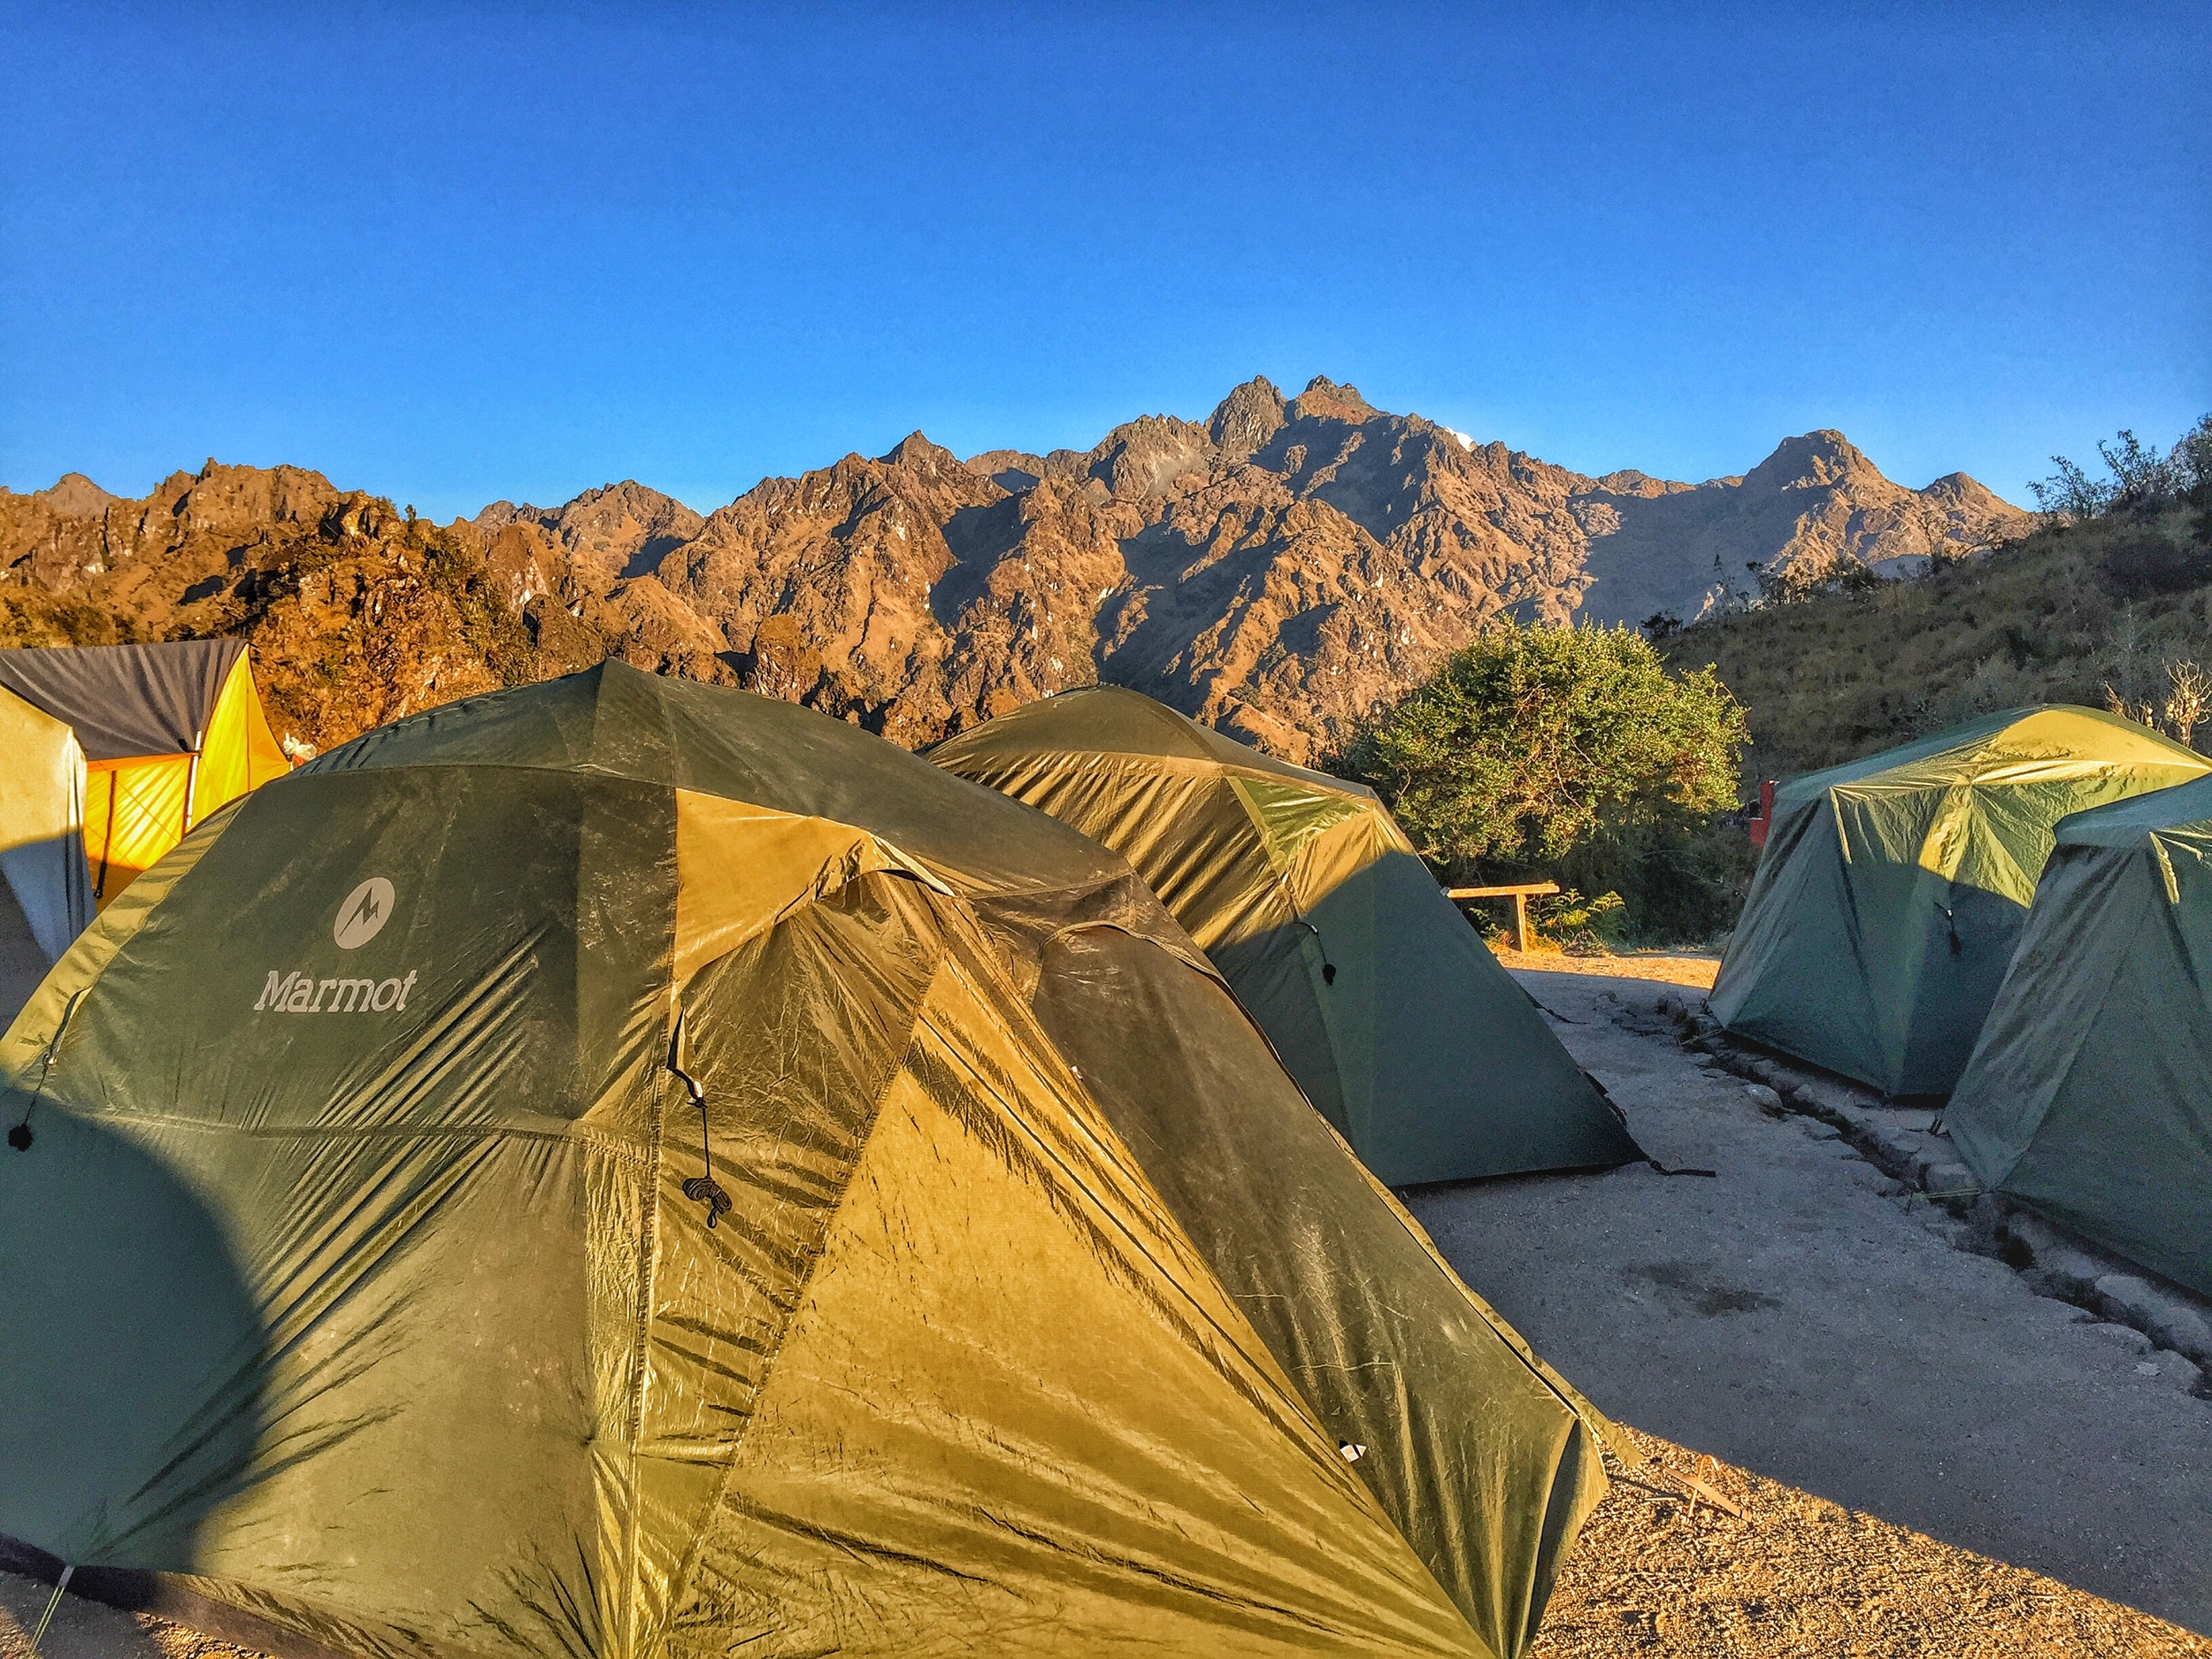 Our camping tents in the mountains.